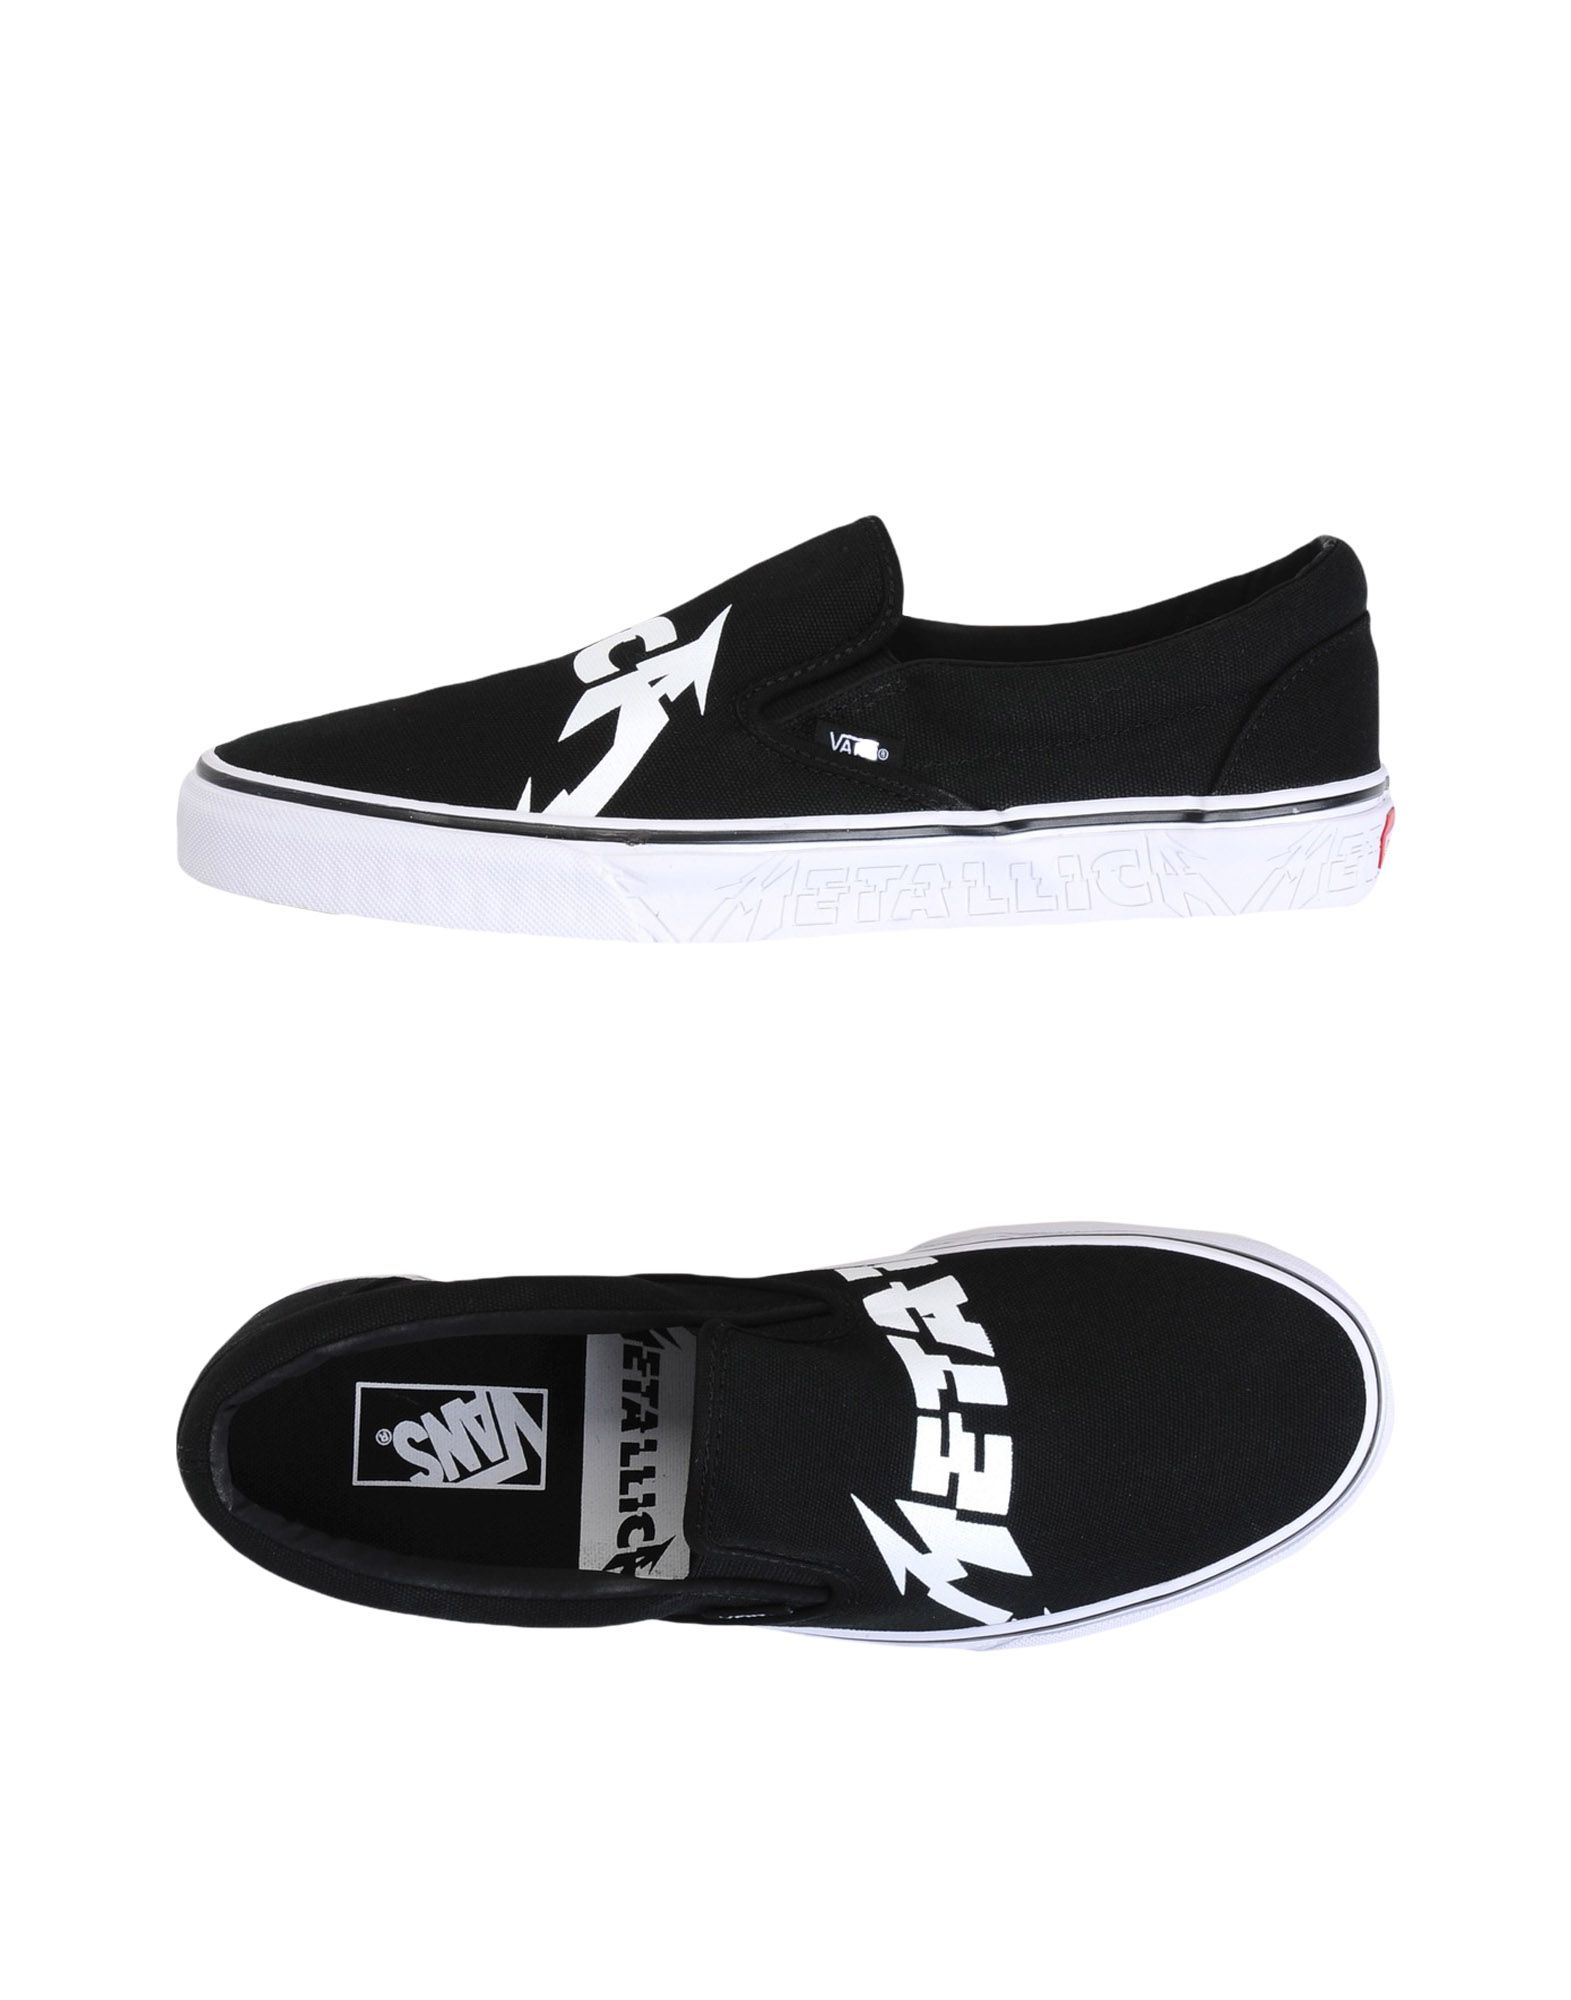 Vans Ua Classic Slip-On - Sneakers - Men Vans Sneakers Kingdom online on  United Kingdom Sneakers - 11456757MN 6944d6